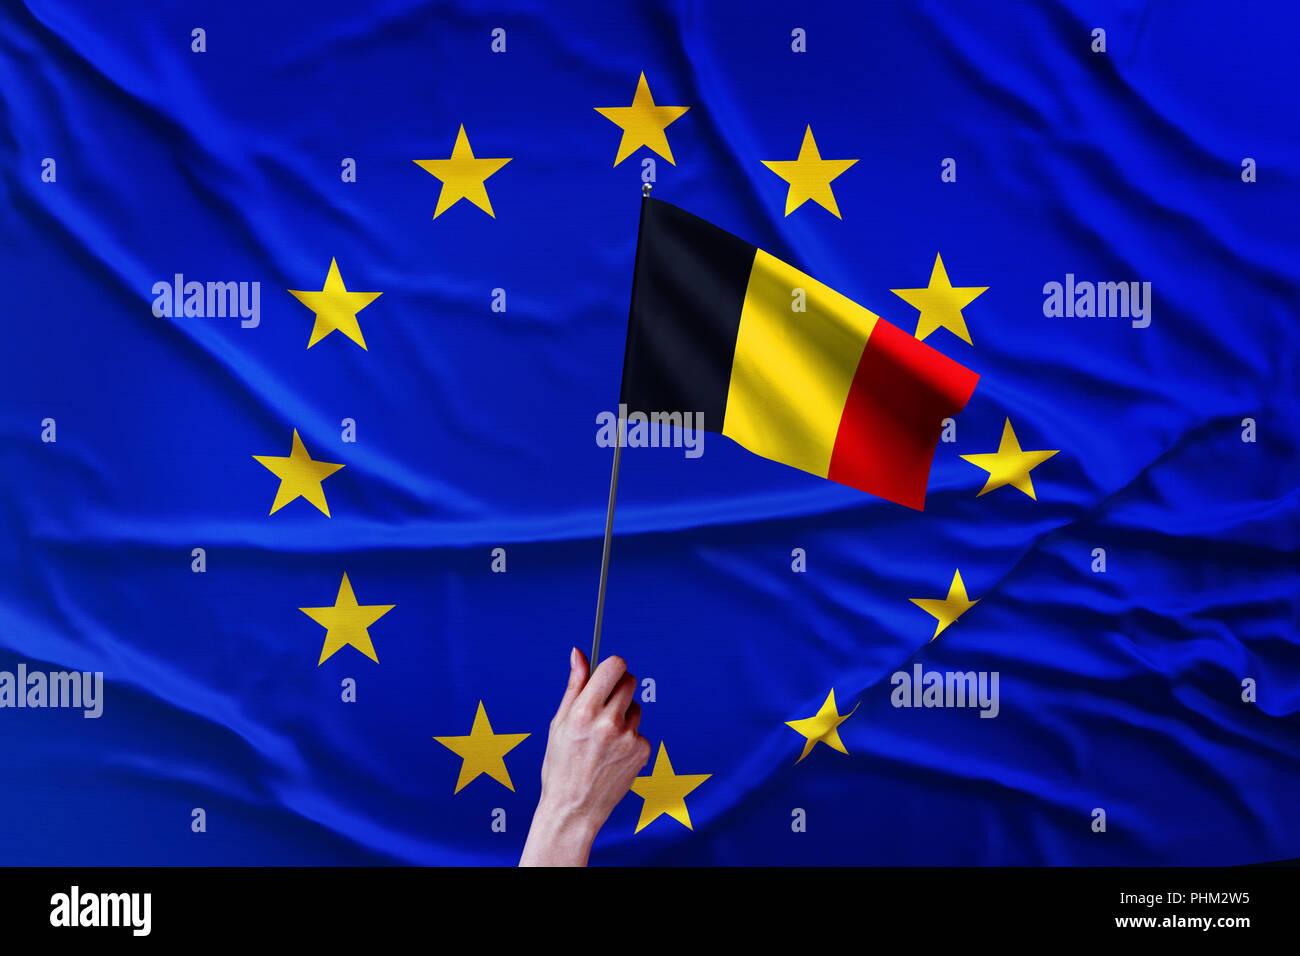 Flag of the European Union and Belgium - Stock Image